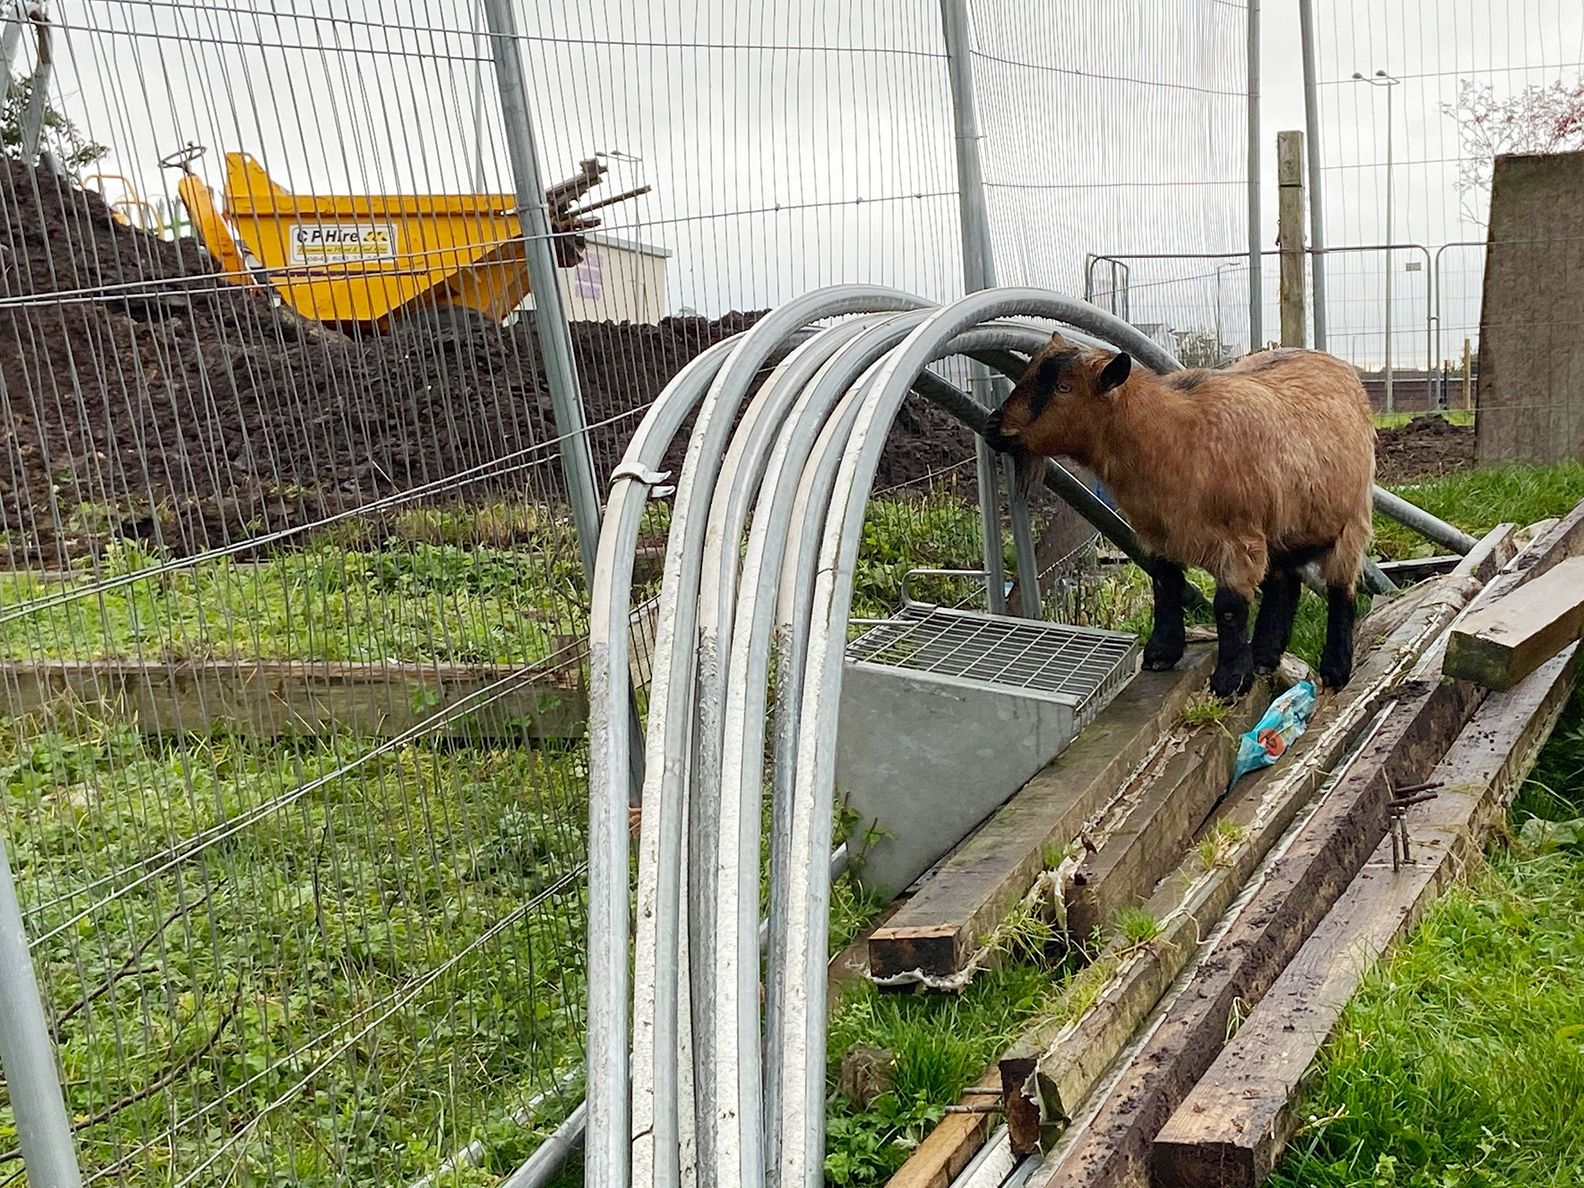 BUILDING SIGHT: A bemused goat looks on as all around work continues on the development of the urban farm near the Bog Meadow